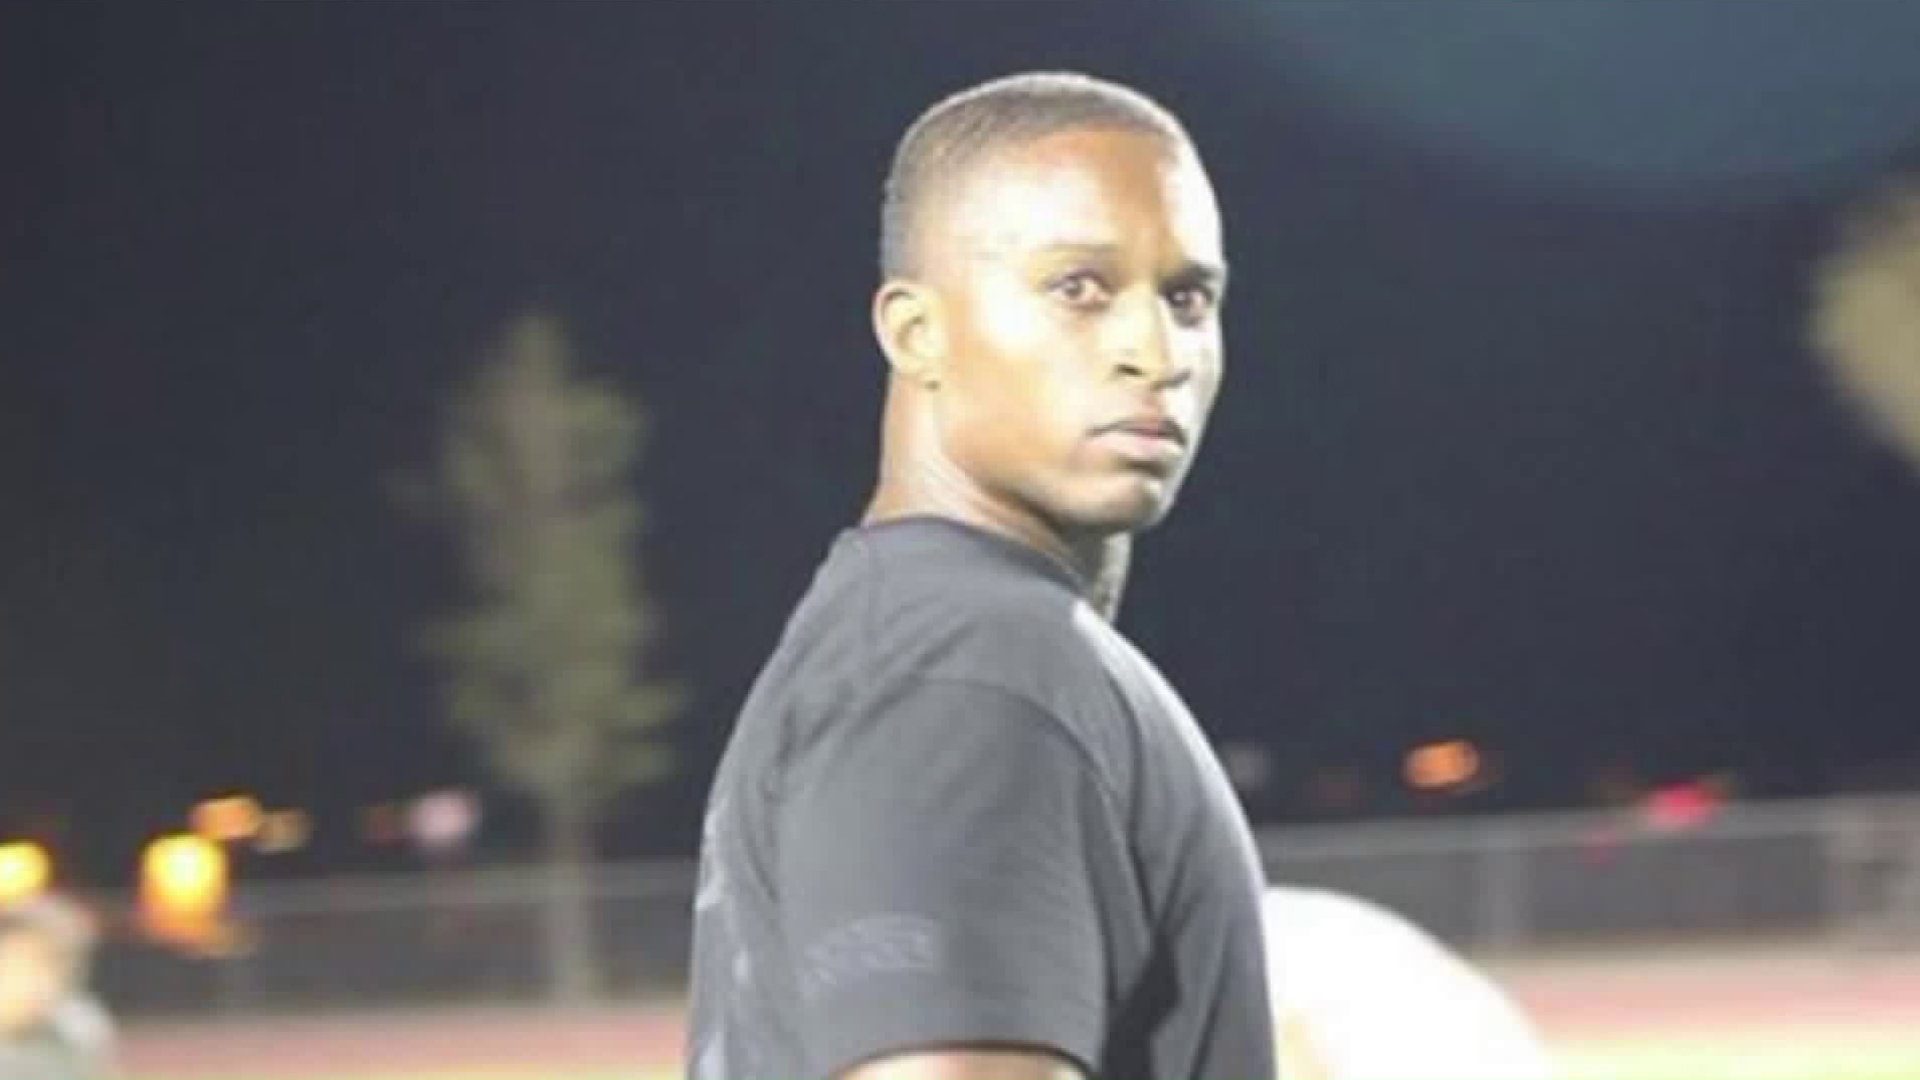 Marcus Williams is seen in a photo provided to KTLA.